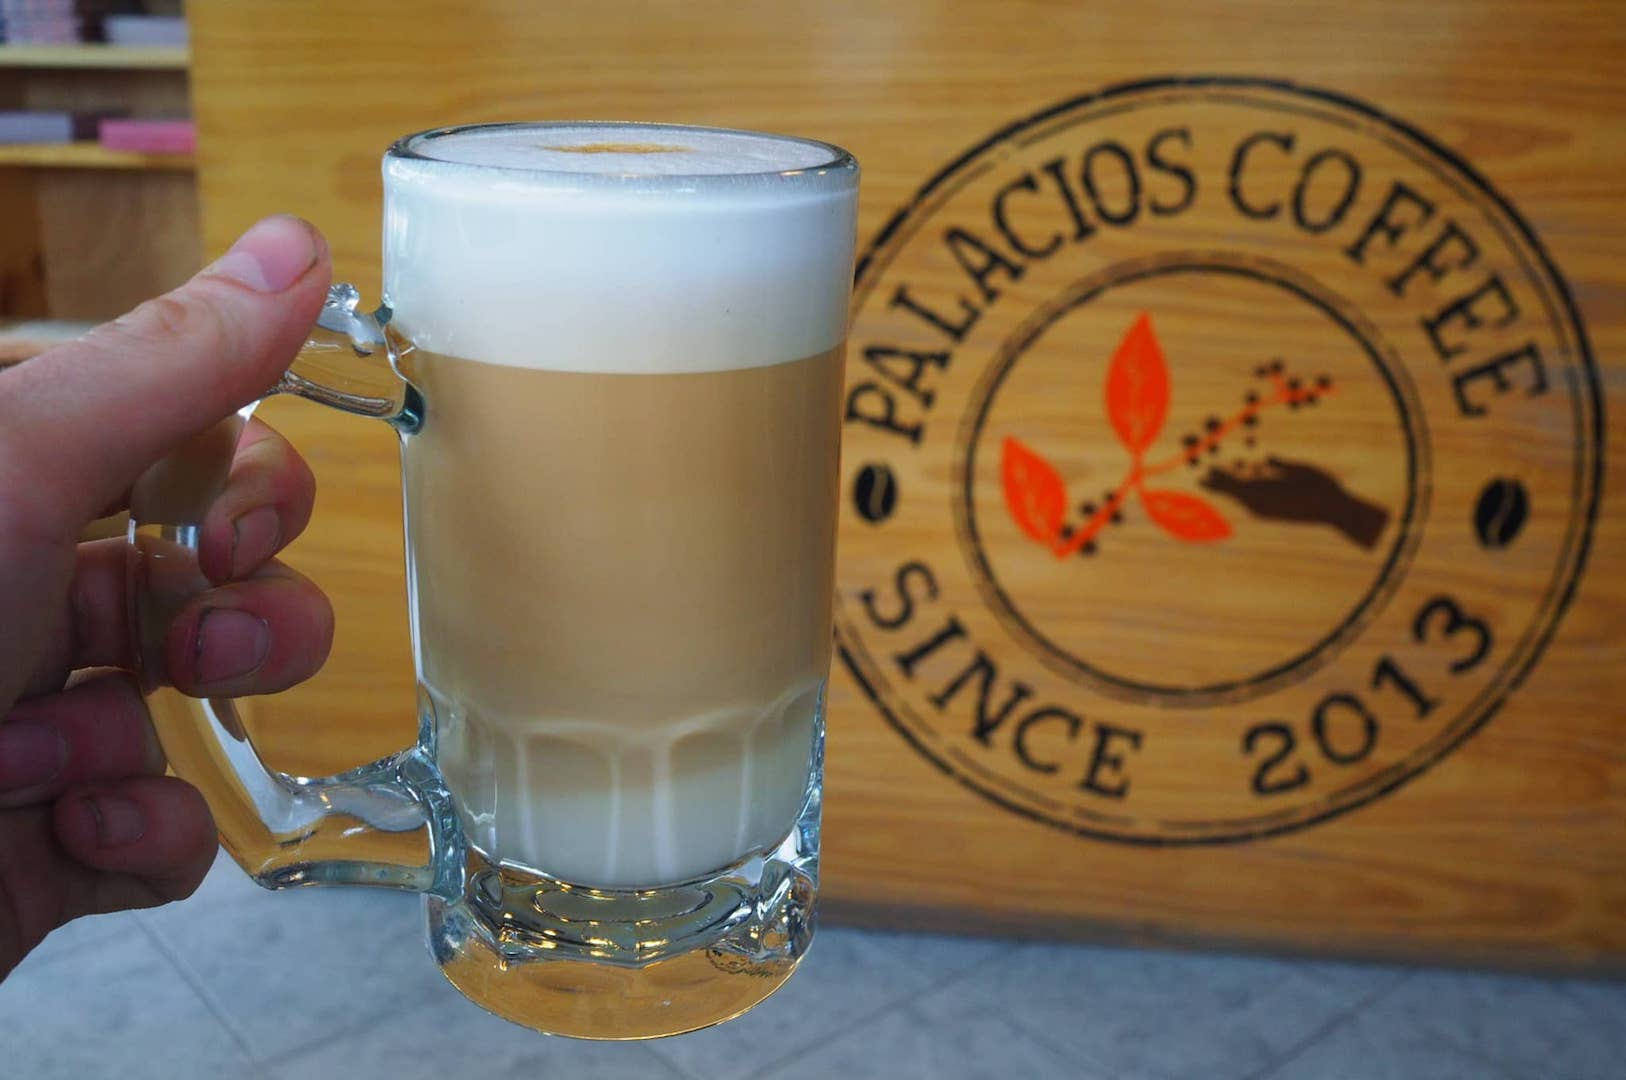 Best coffee in the americas panamerican highway